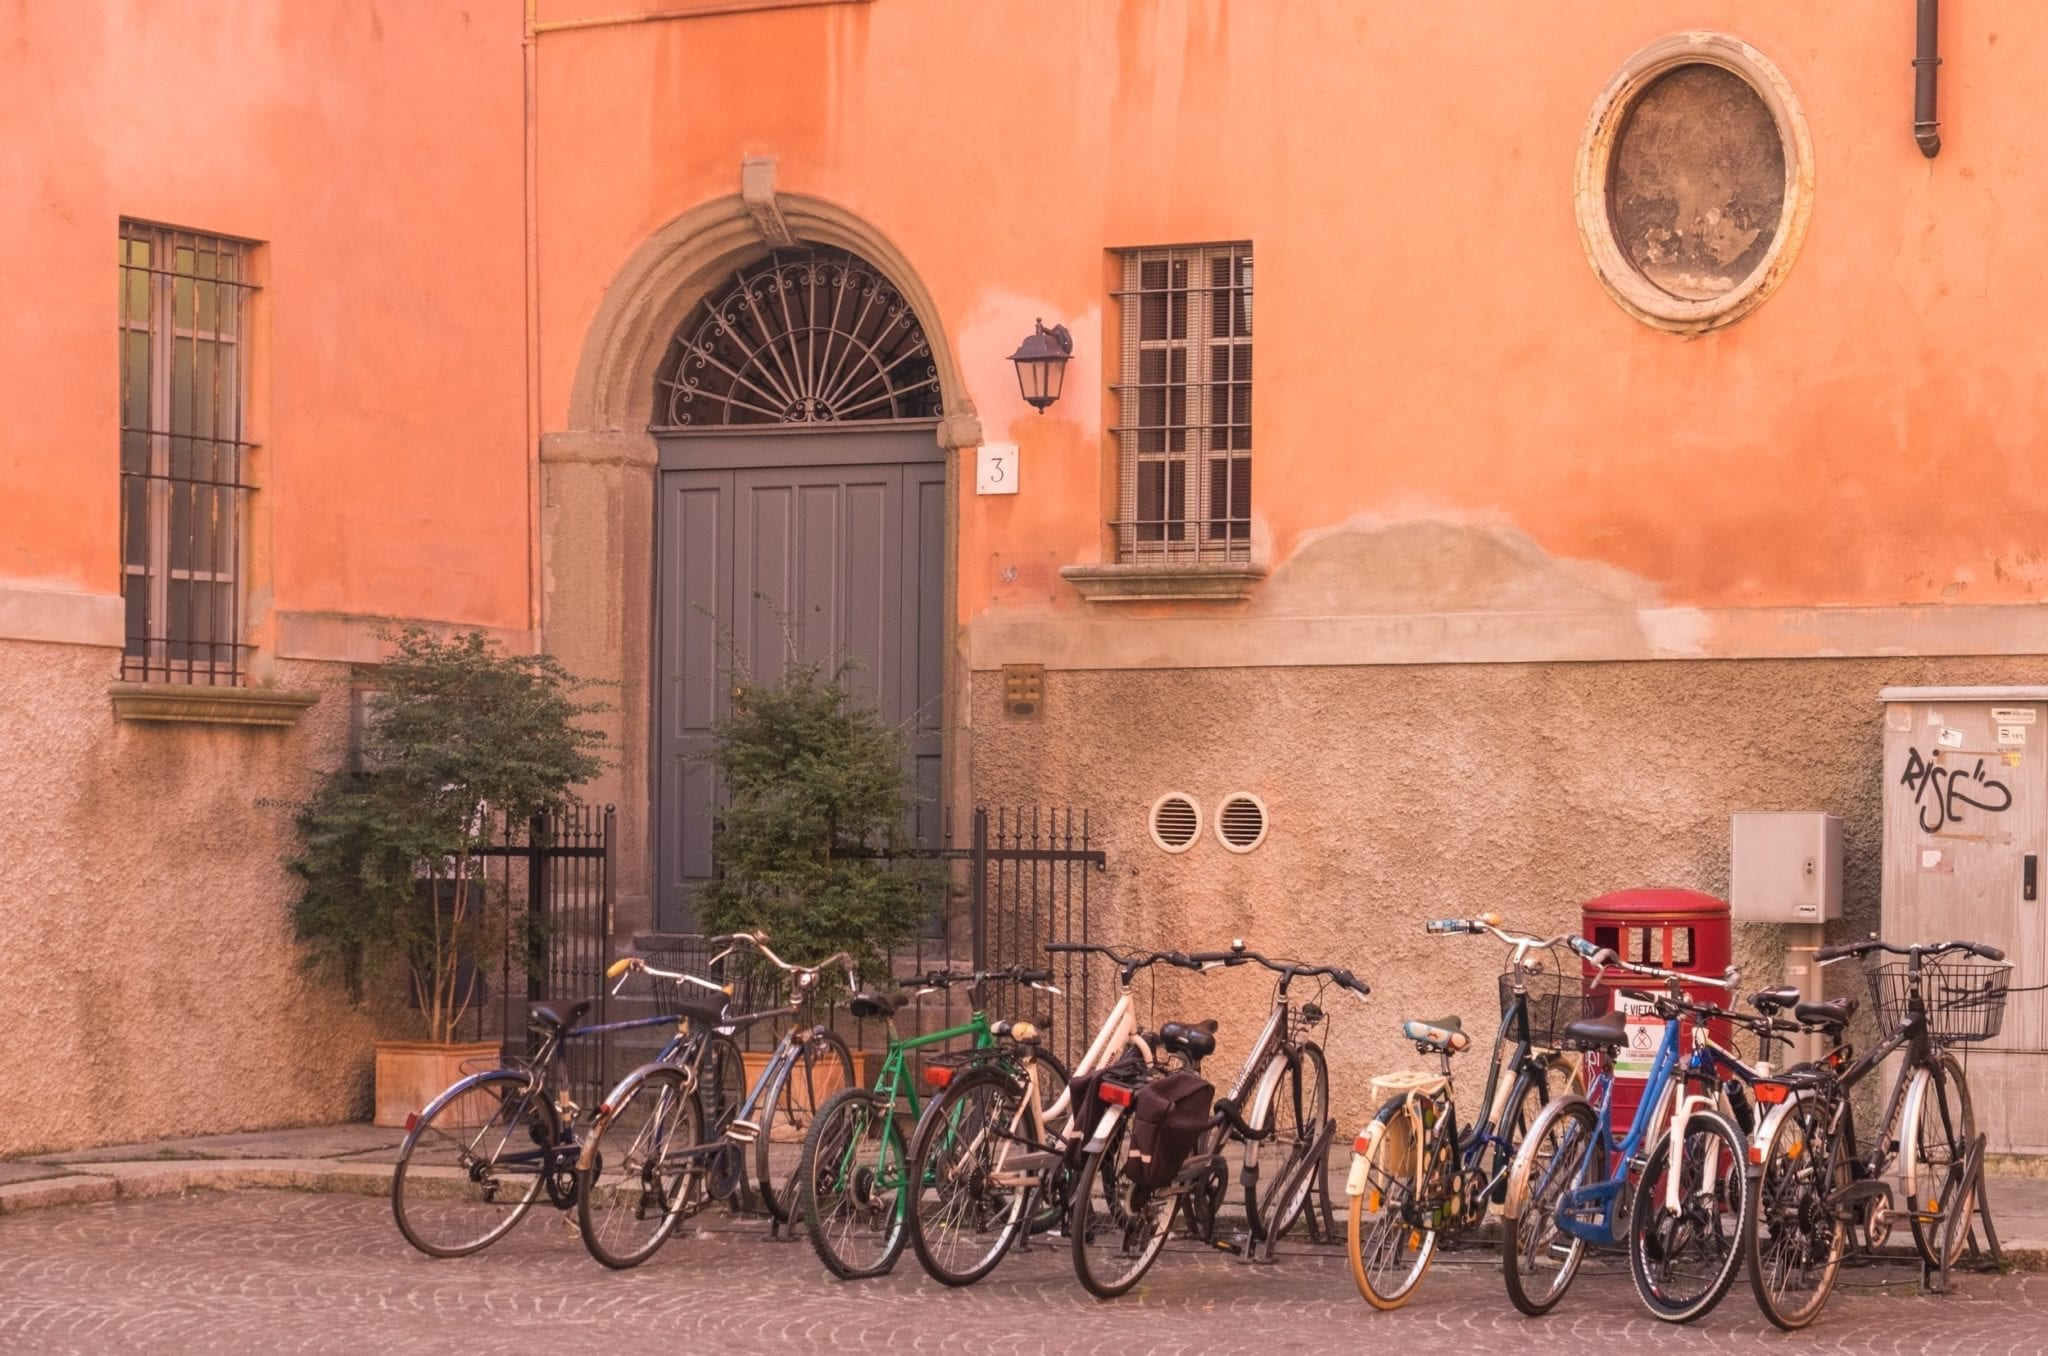 Several bicycles parked outside a building with a bright pink wall and a large gray-blue door.